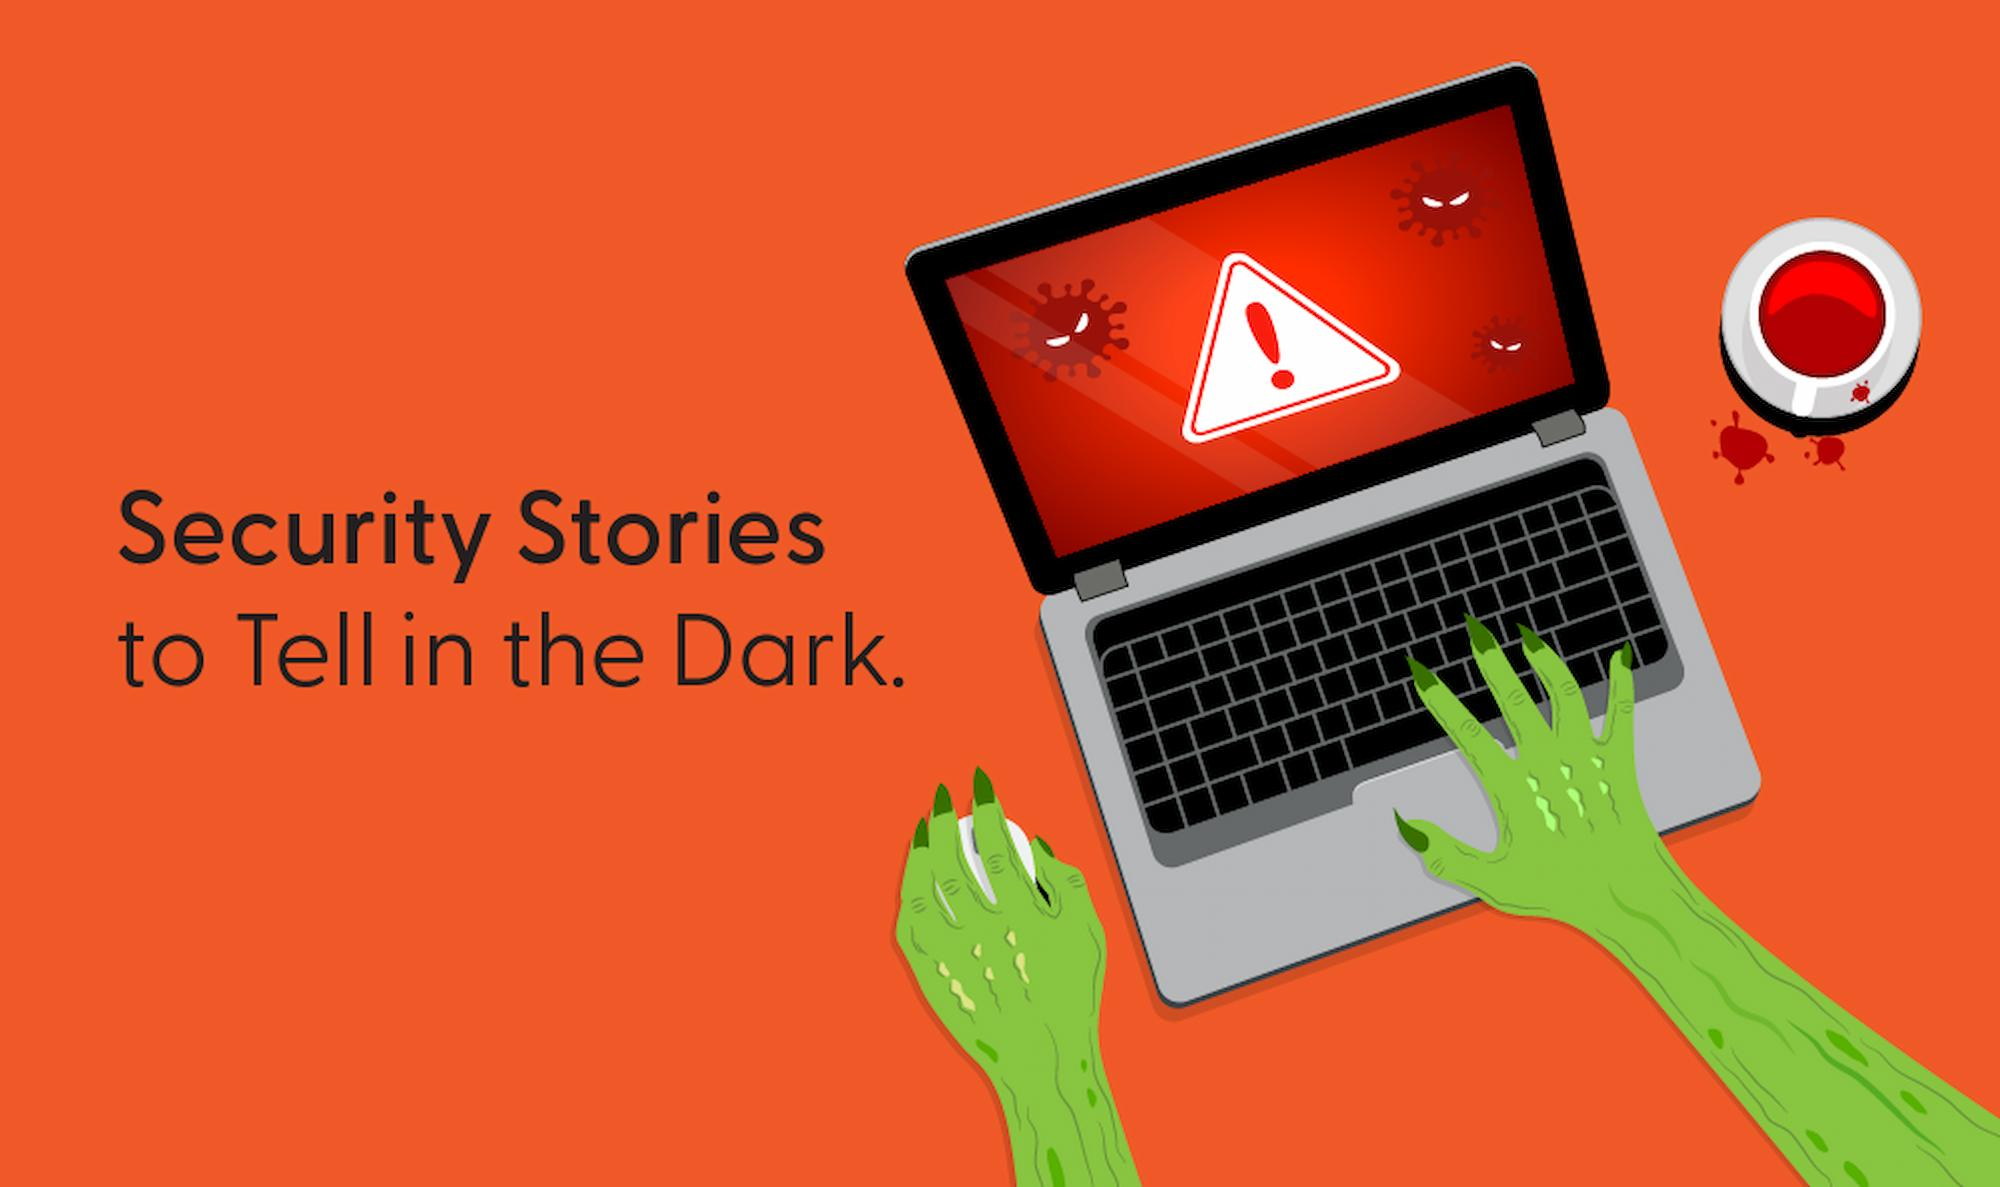 Security Stories to Tell in the Dark